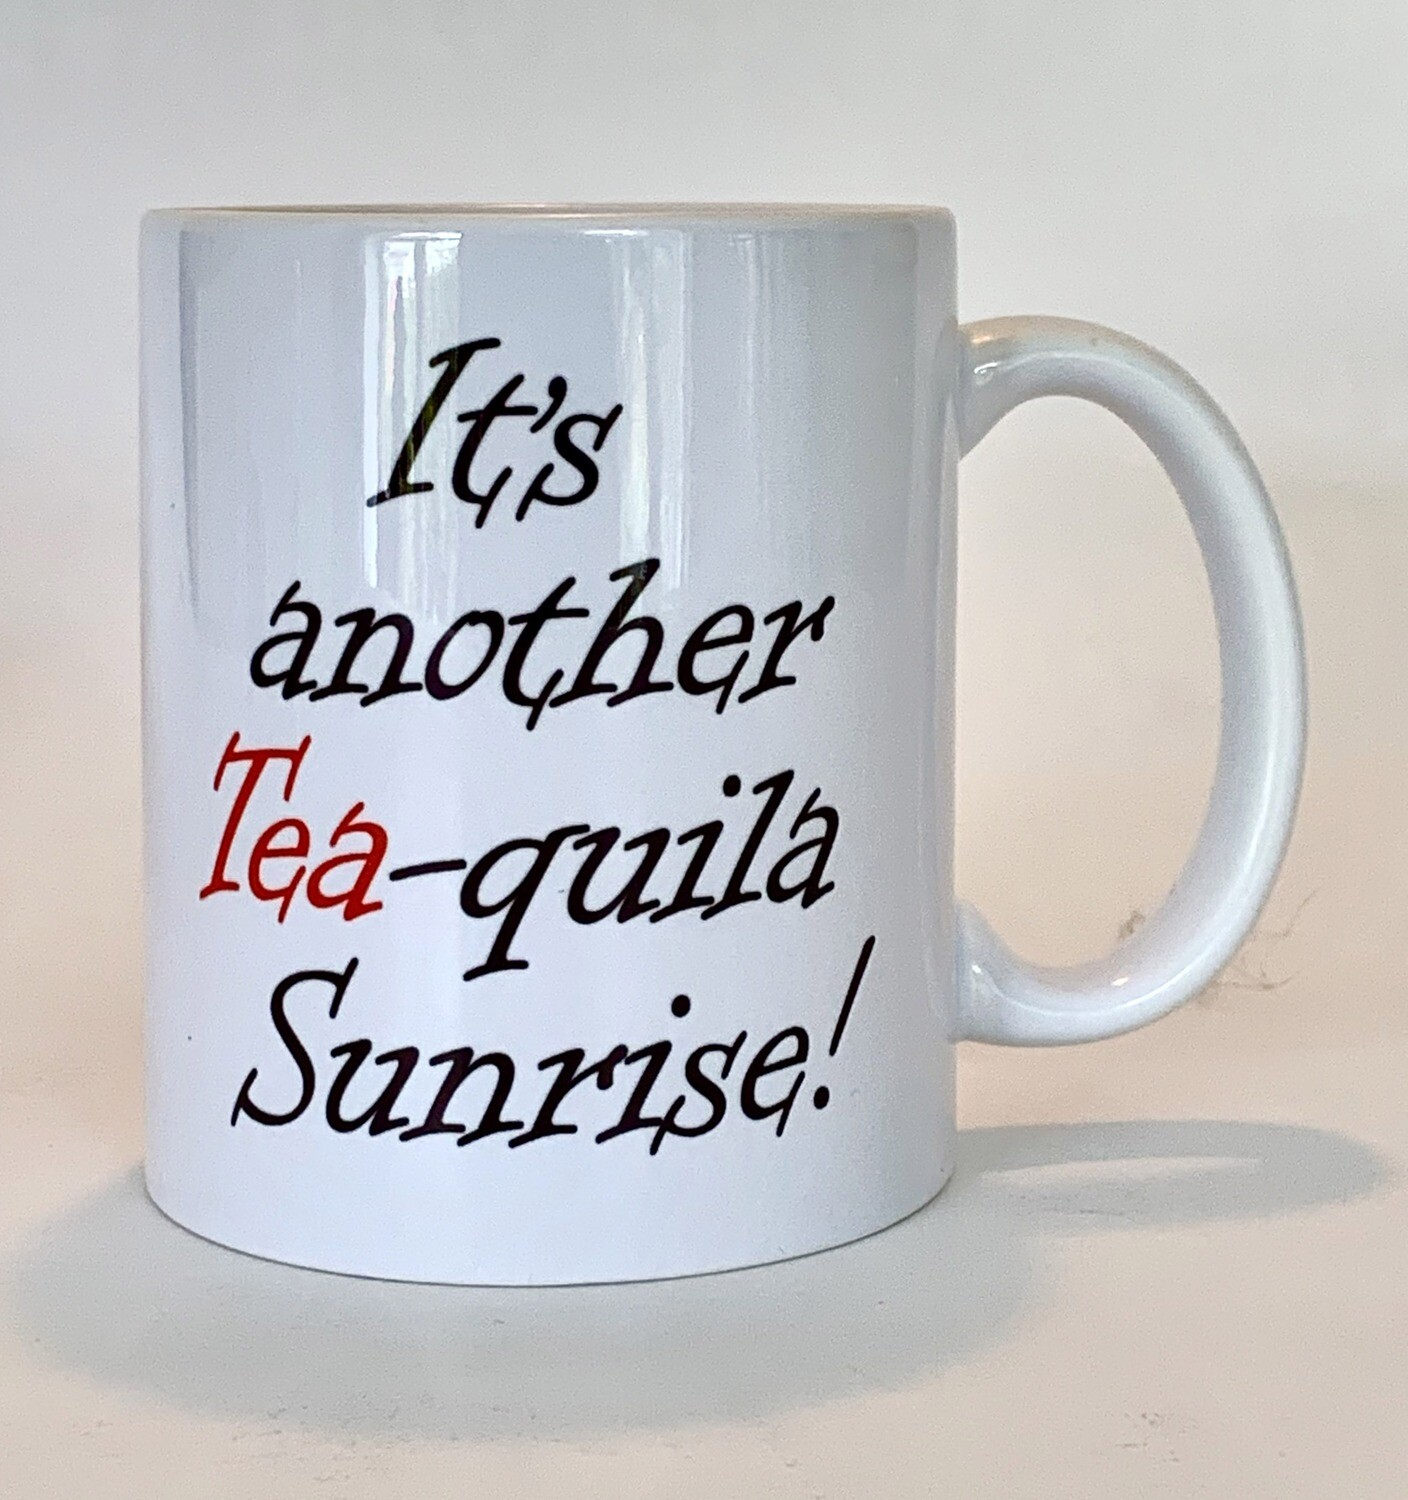 Tea-quila Sunrise Mug - NOW JUST £10!